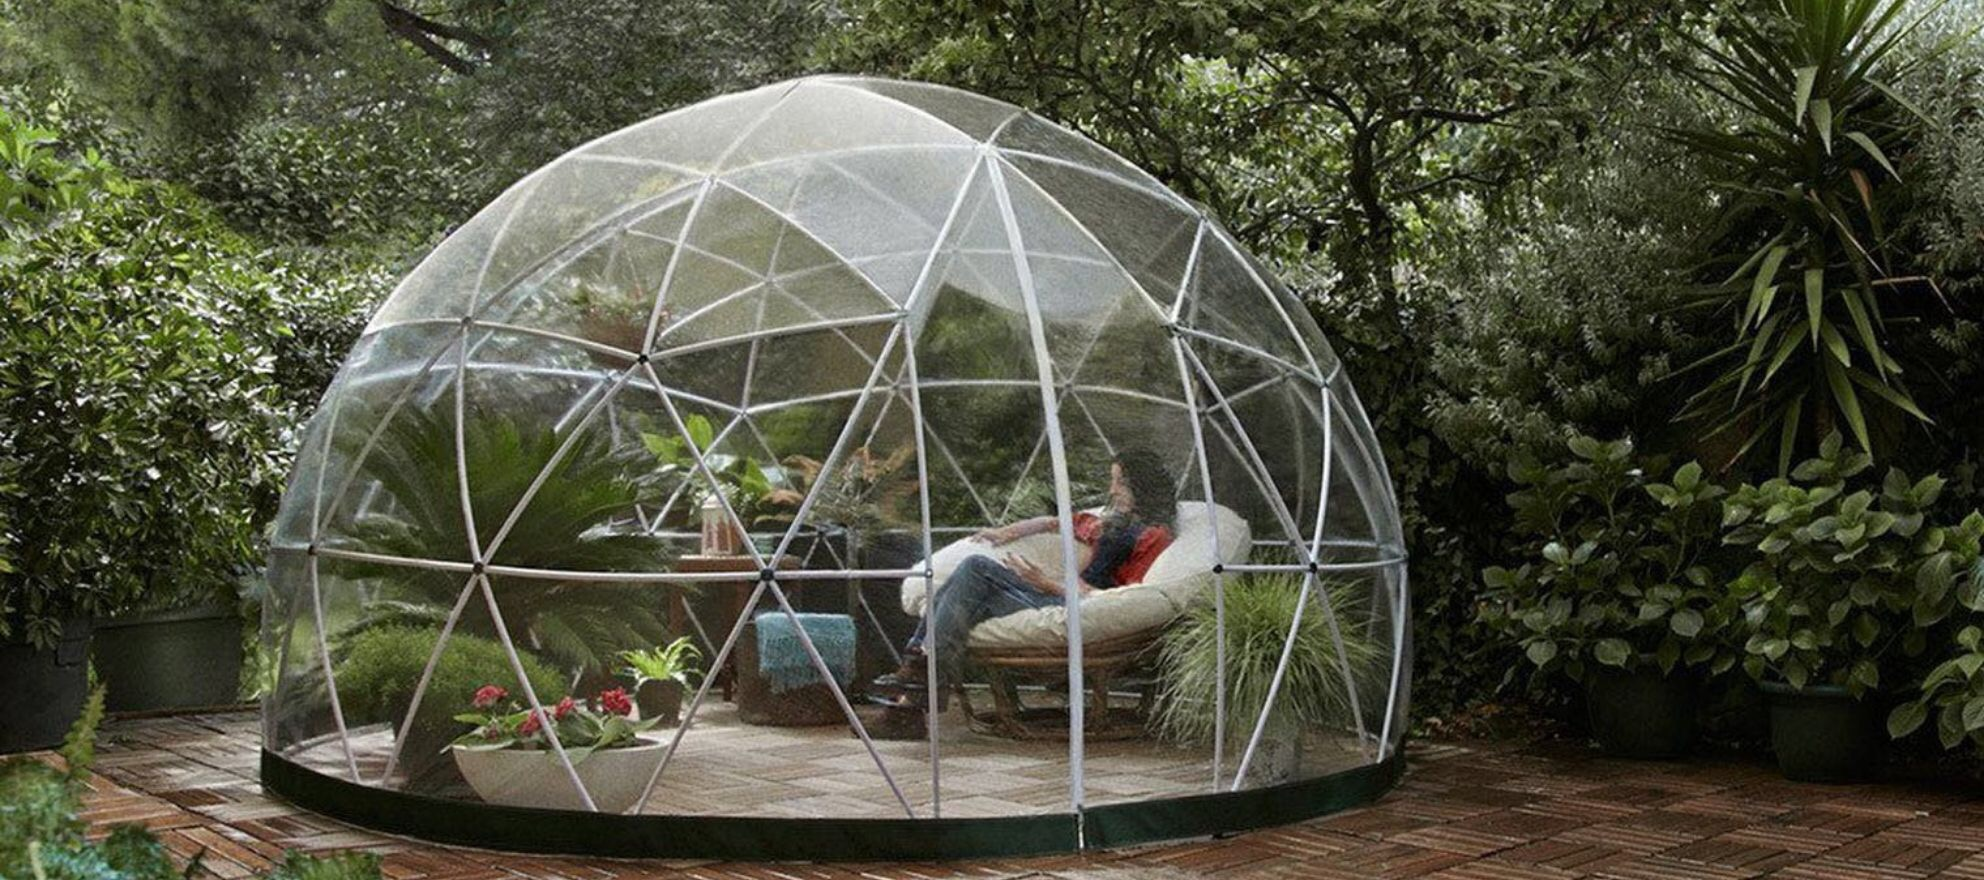 Amazon is selling a transparent dome igloo